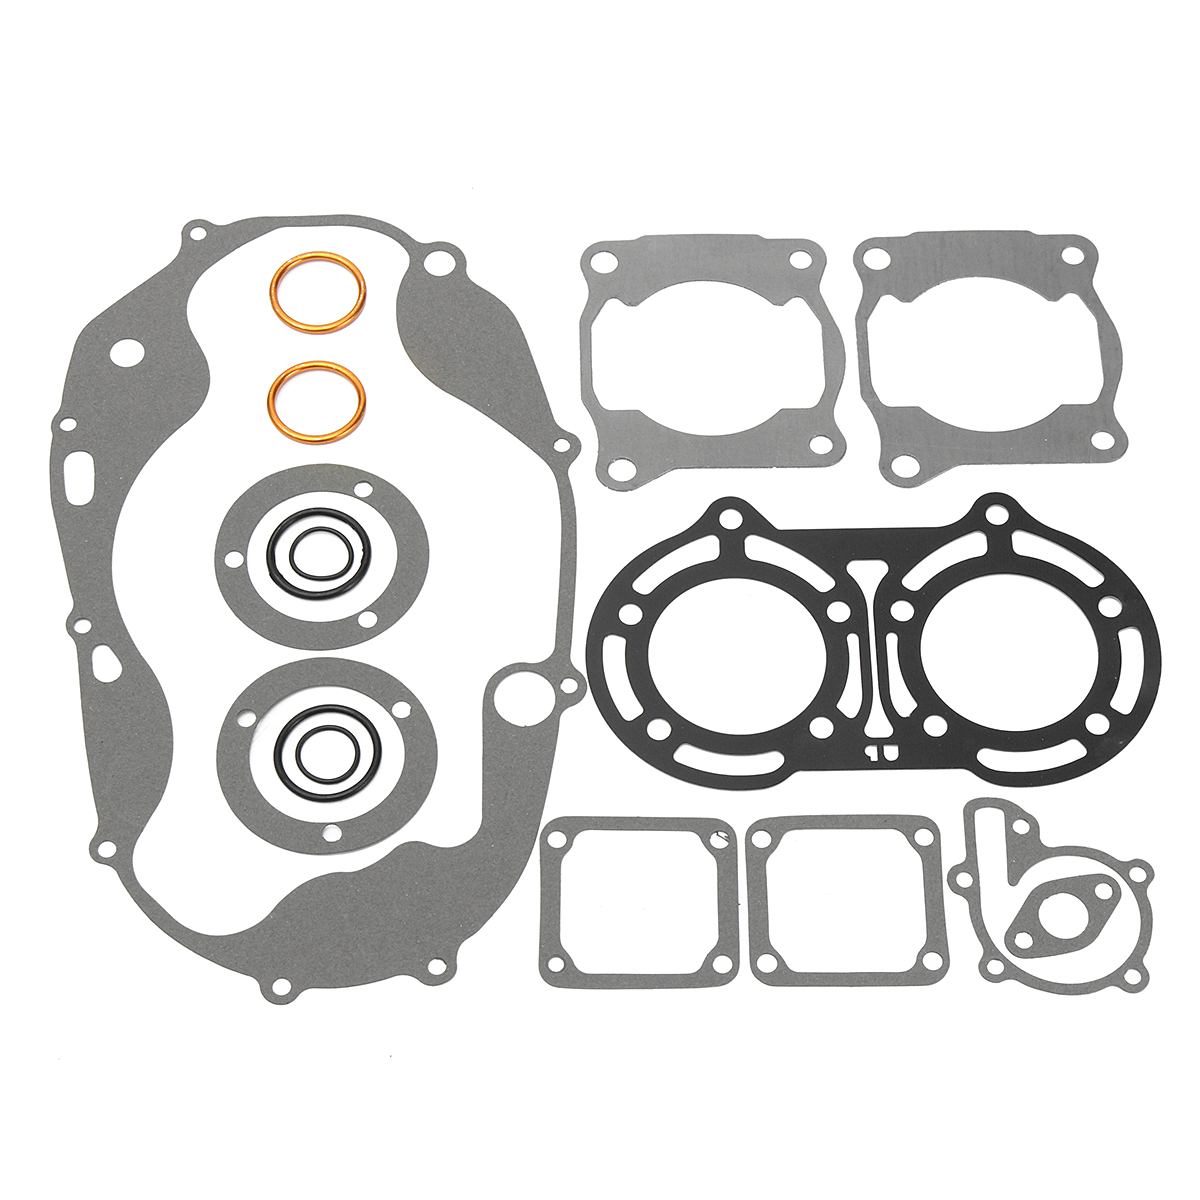 Engine Gasket Rebuild Kit Set For Yamaha Banshee YFZ 35